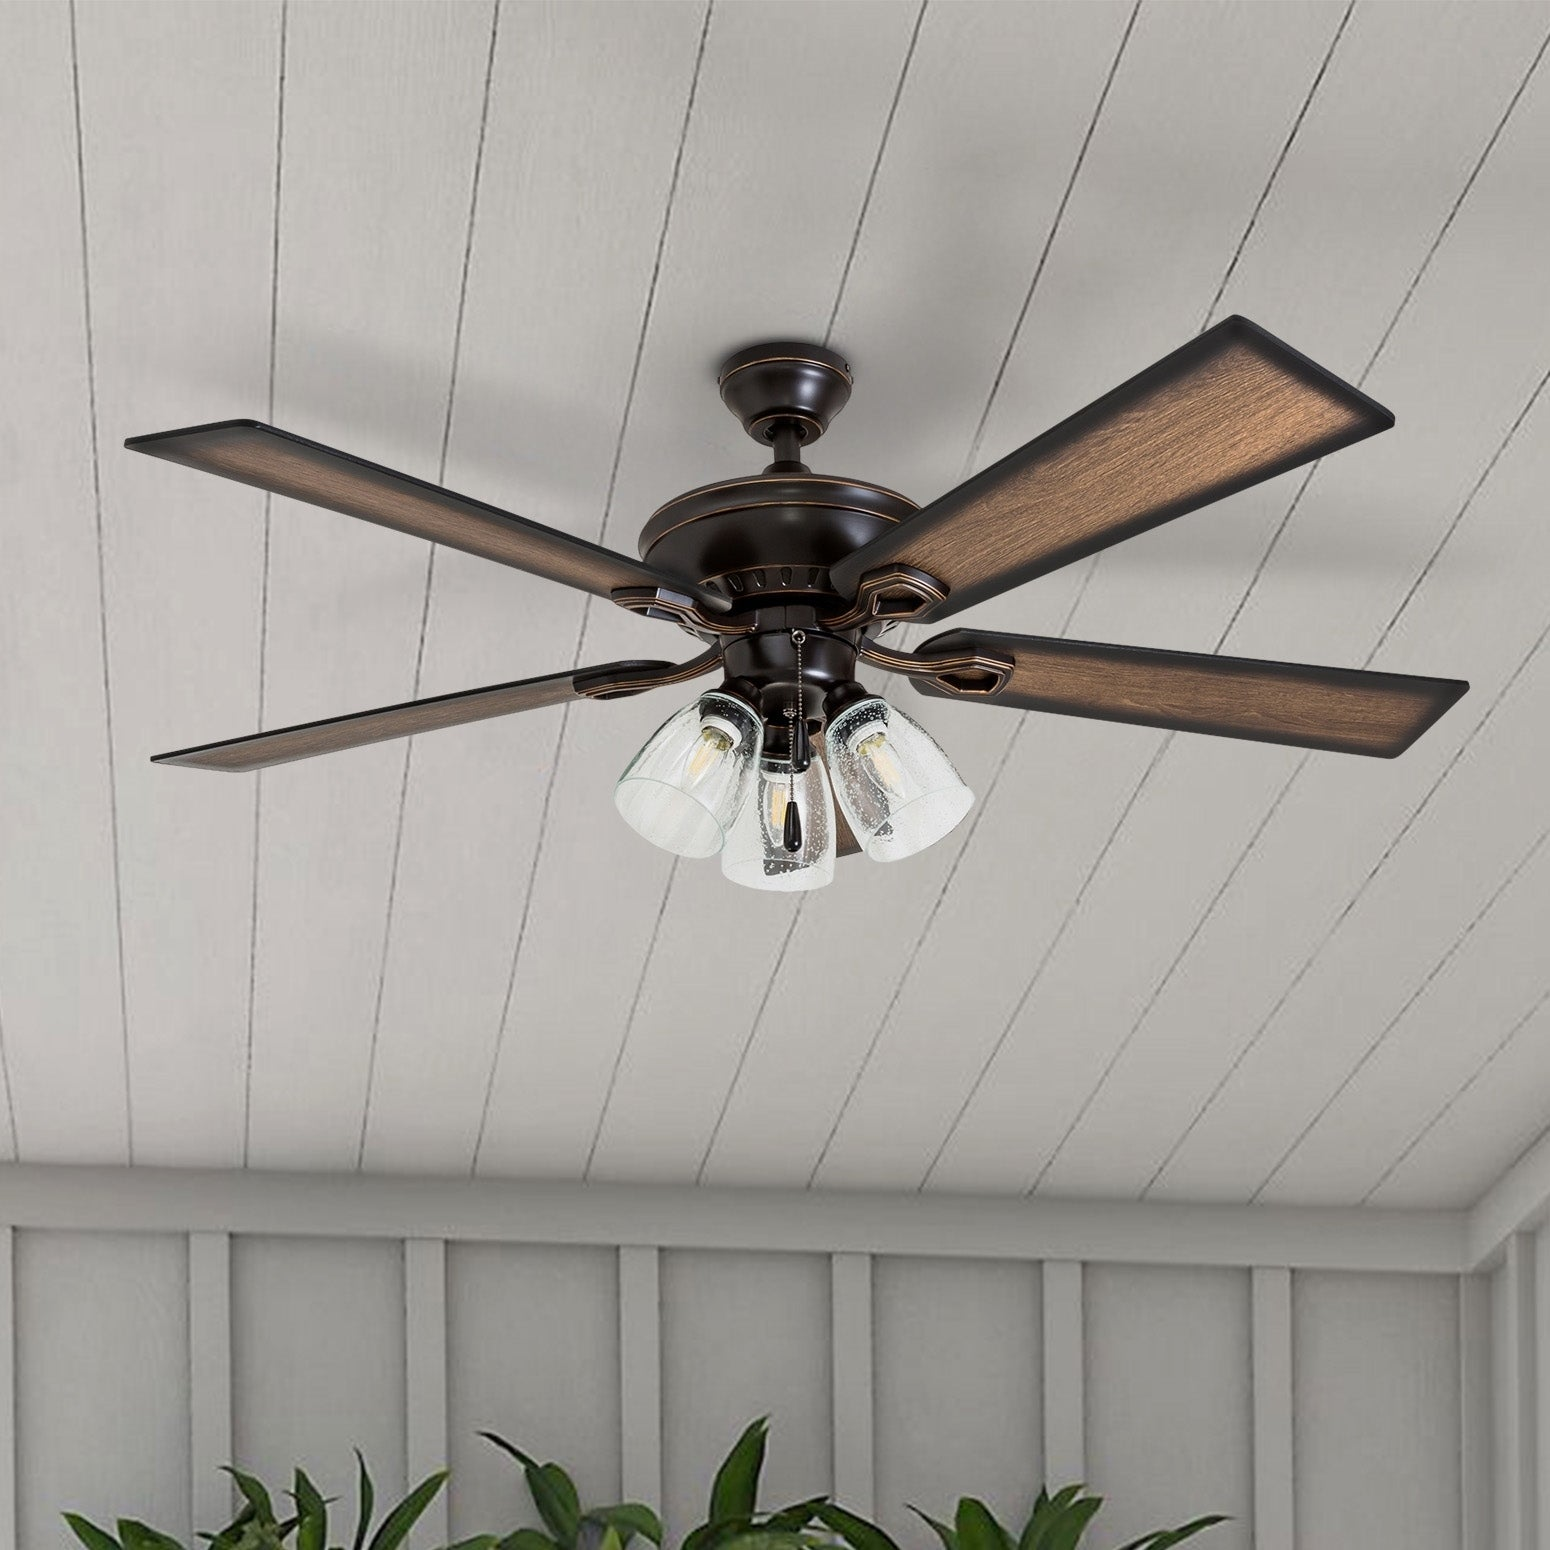 Shop Black Friday Deals On The Gray Barn Hanley Hill Rustic 3 Light Ceiling Fan In Oil Rubbed Bronze On Sale Overstock 18220414